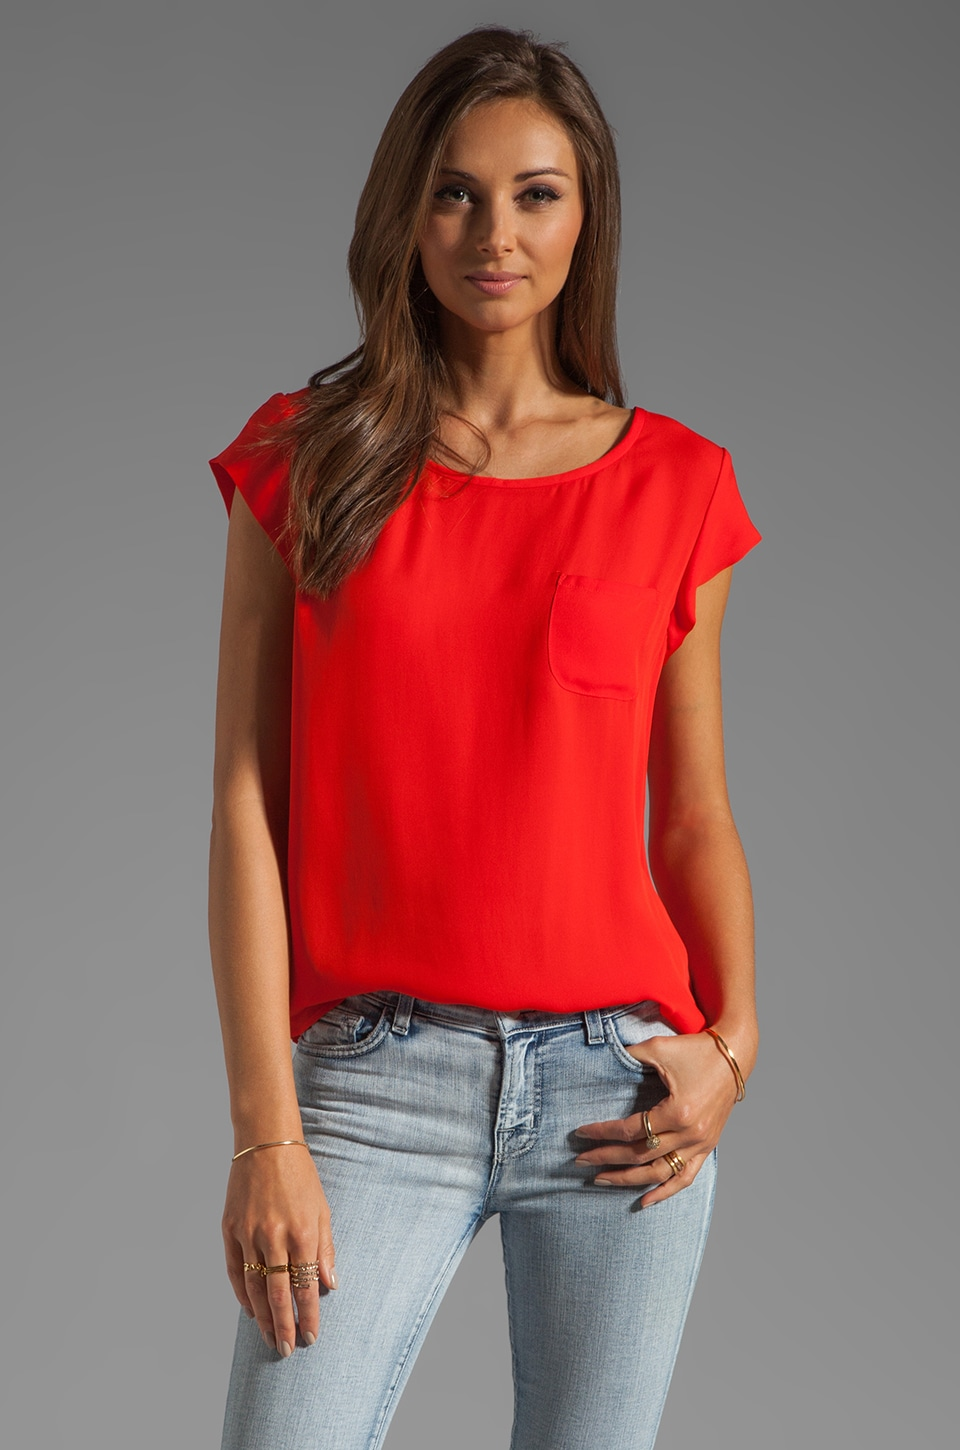 Joie Rancher Silk Top in Fiery Red